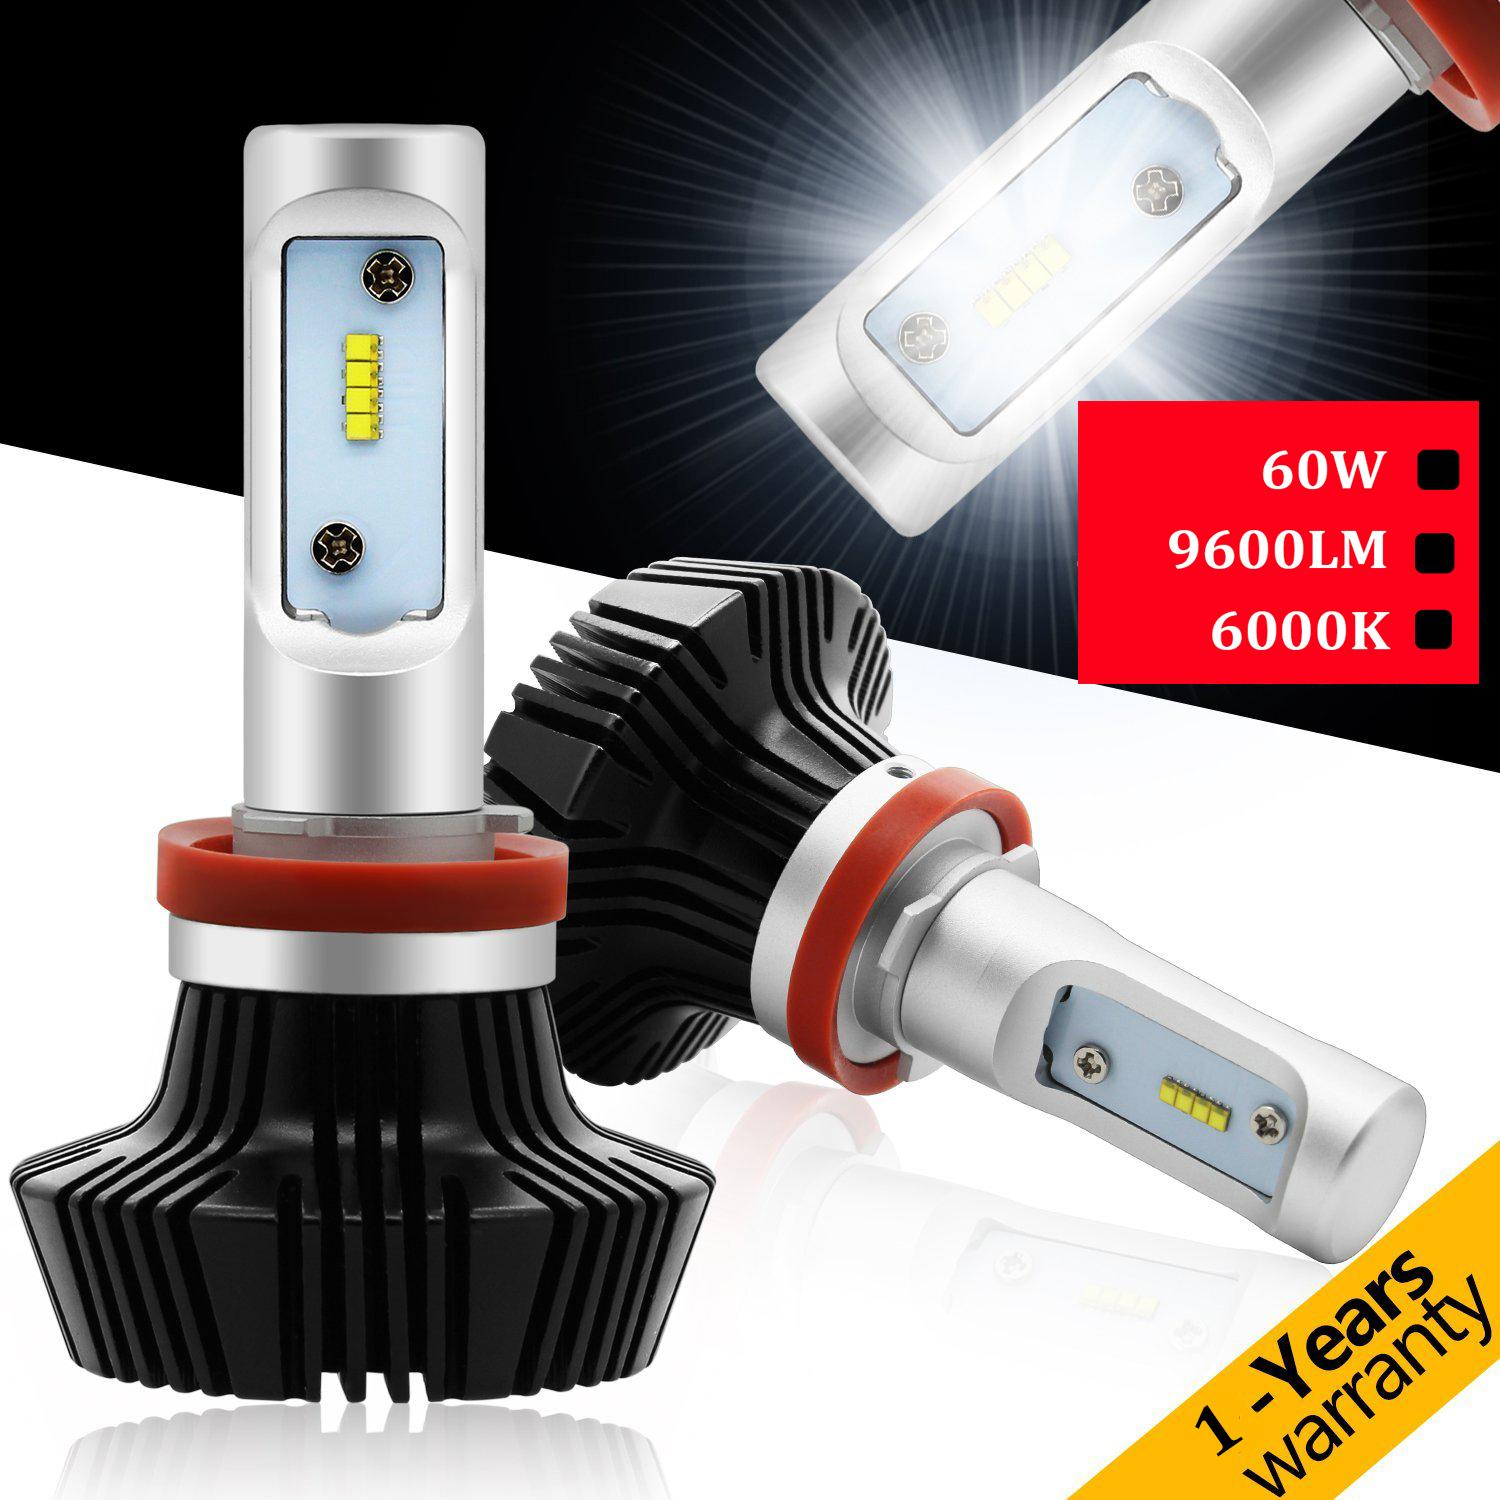 Top quality Car light New 2pcs For Philips LED Chips 60W 12000LM 9005/HB3 Headlight Kit Beam Lamps Light Lamp Bulb